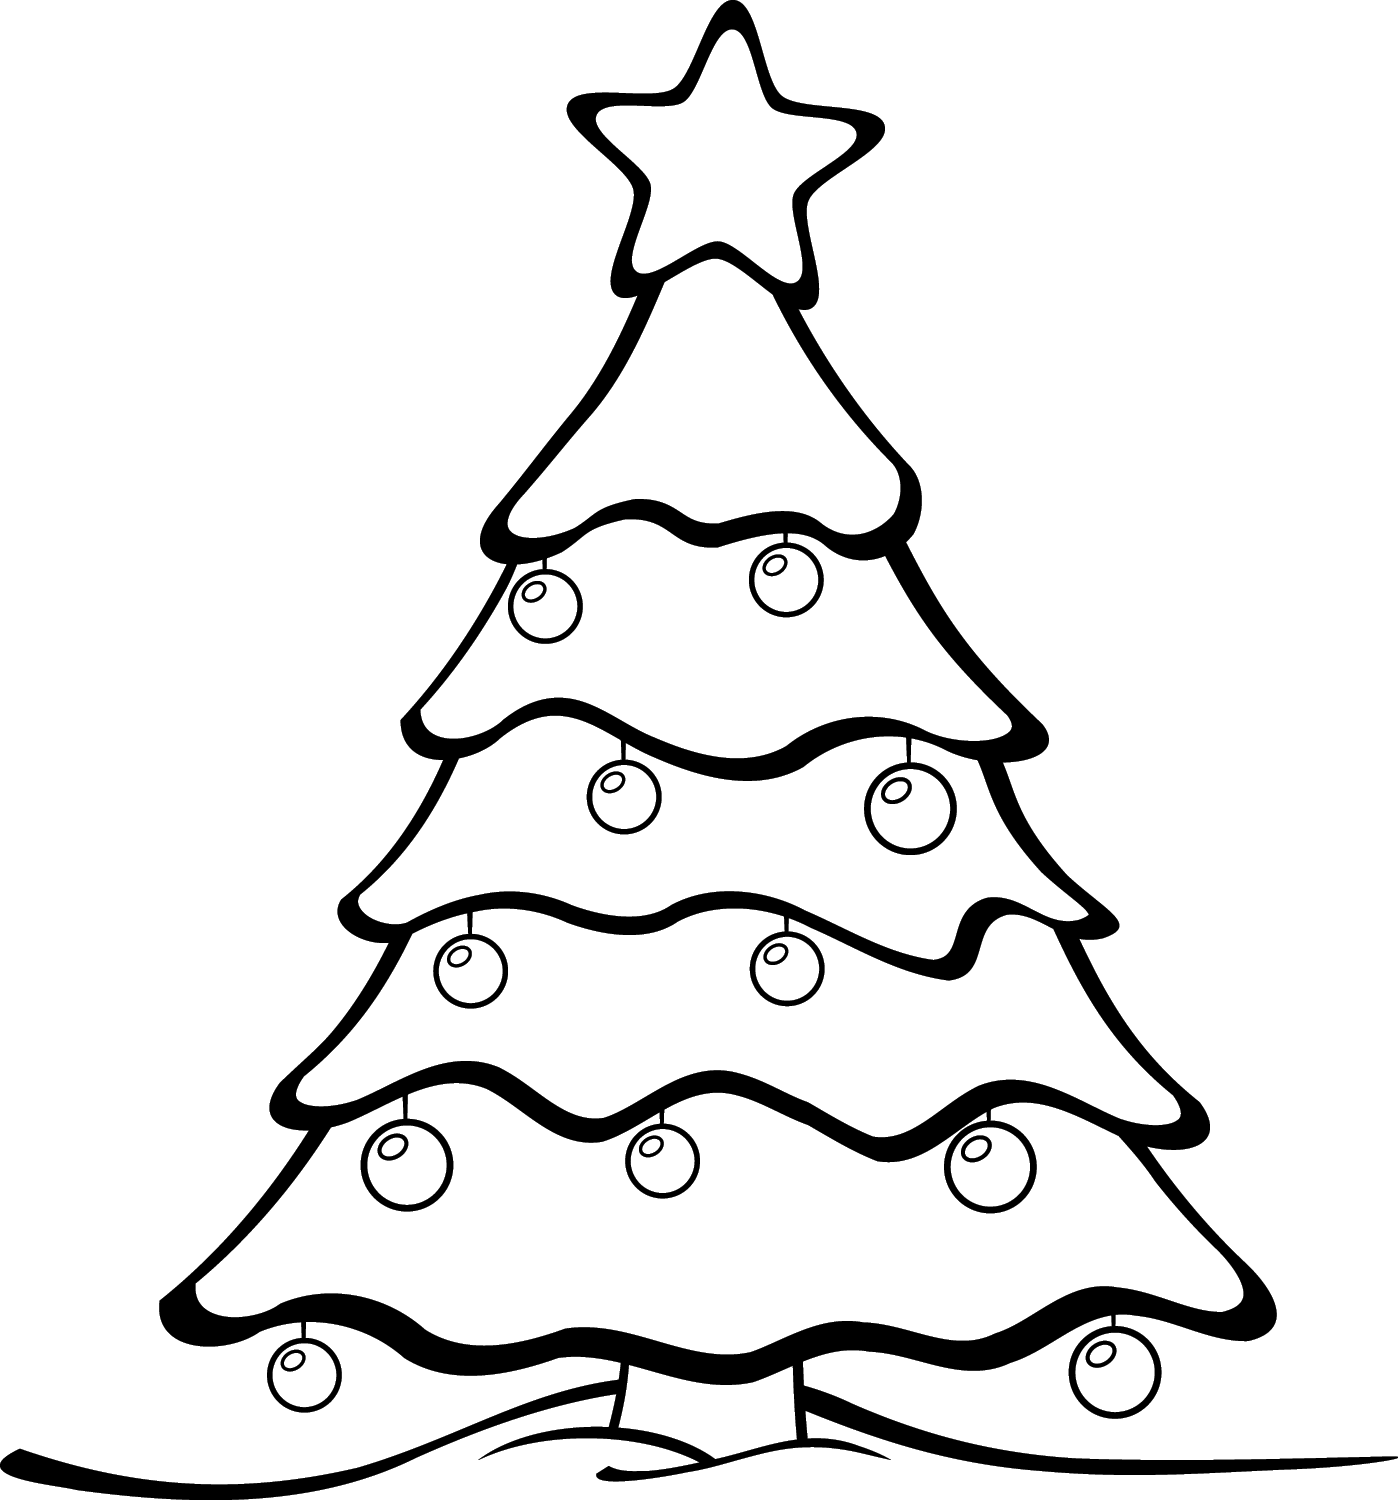 Simple black and white christmas clipart suggest